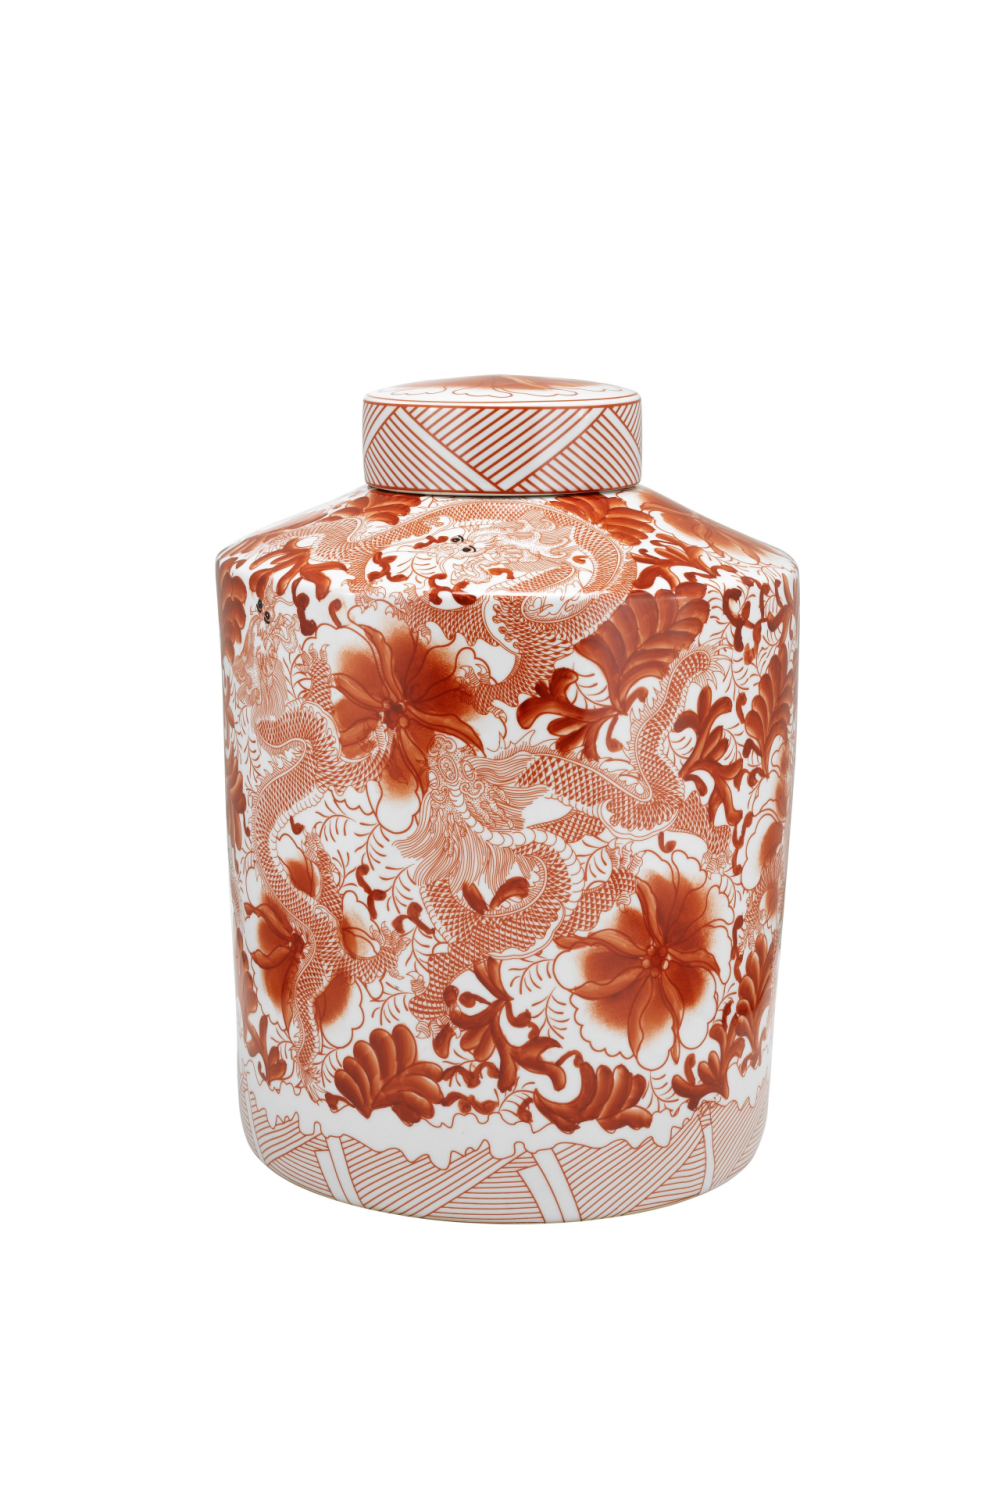 Porcelain Vase | Eichholtz Artemisia | OROA Modern & Luxury Furniture